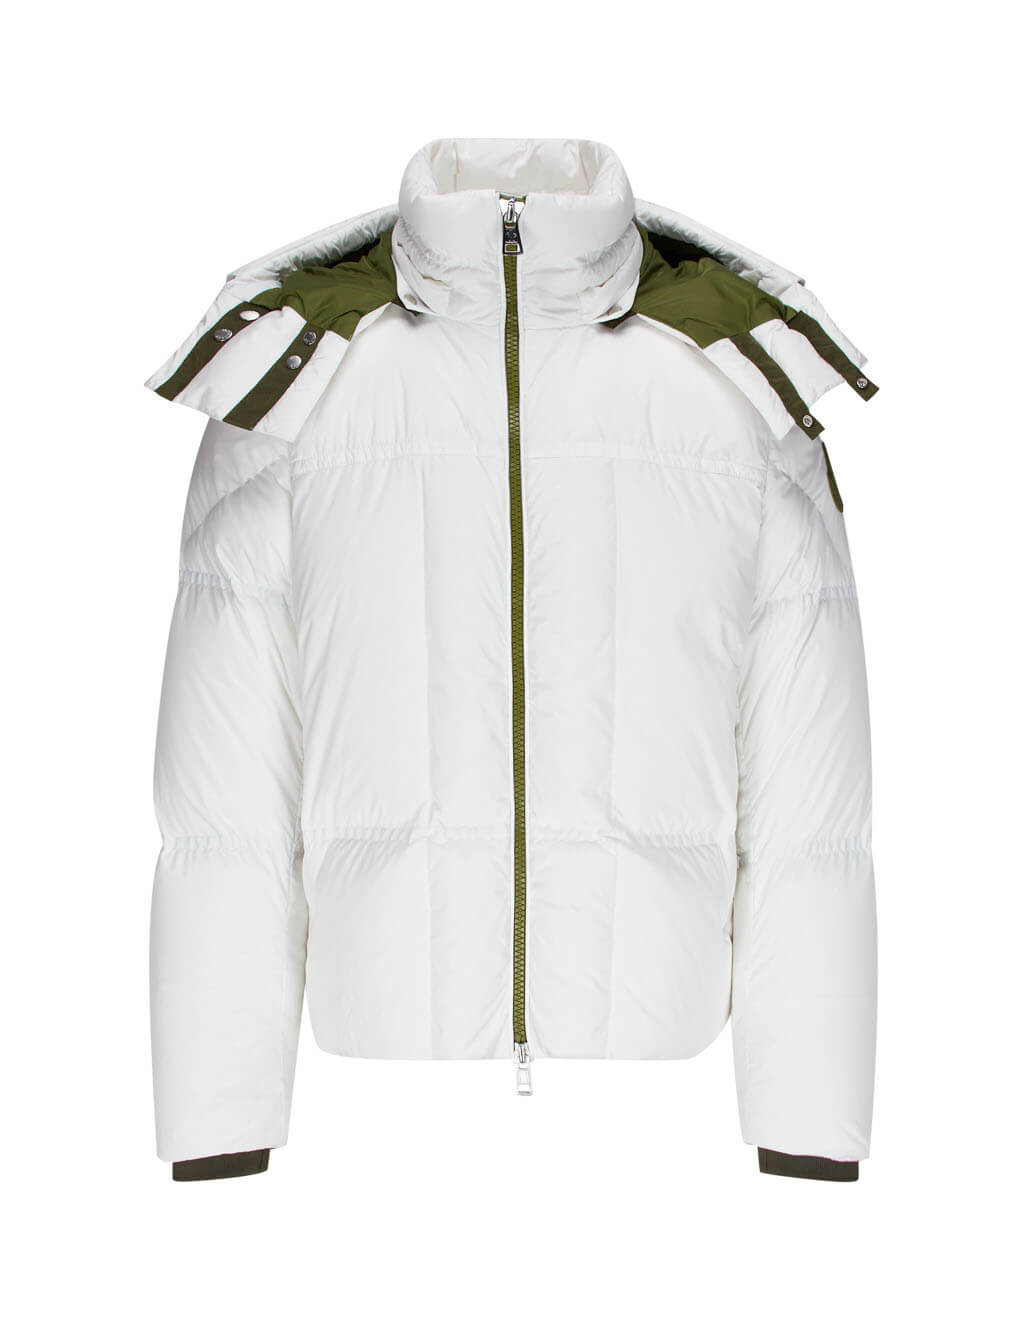 Men's Moncler Diois Jacket in White - 0911B5610068352042